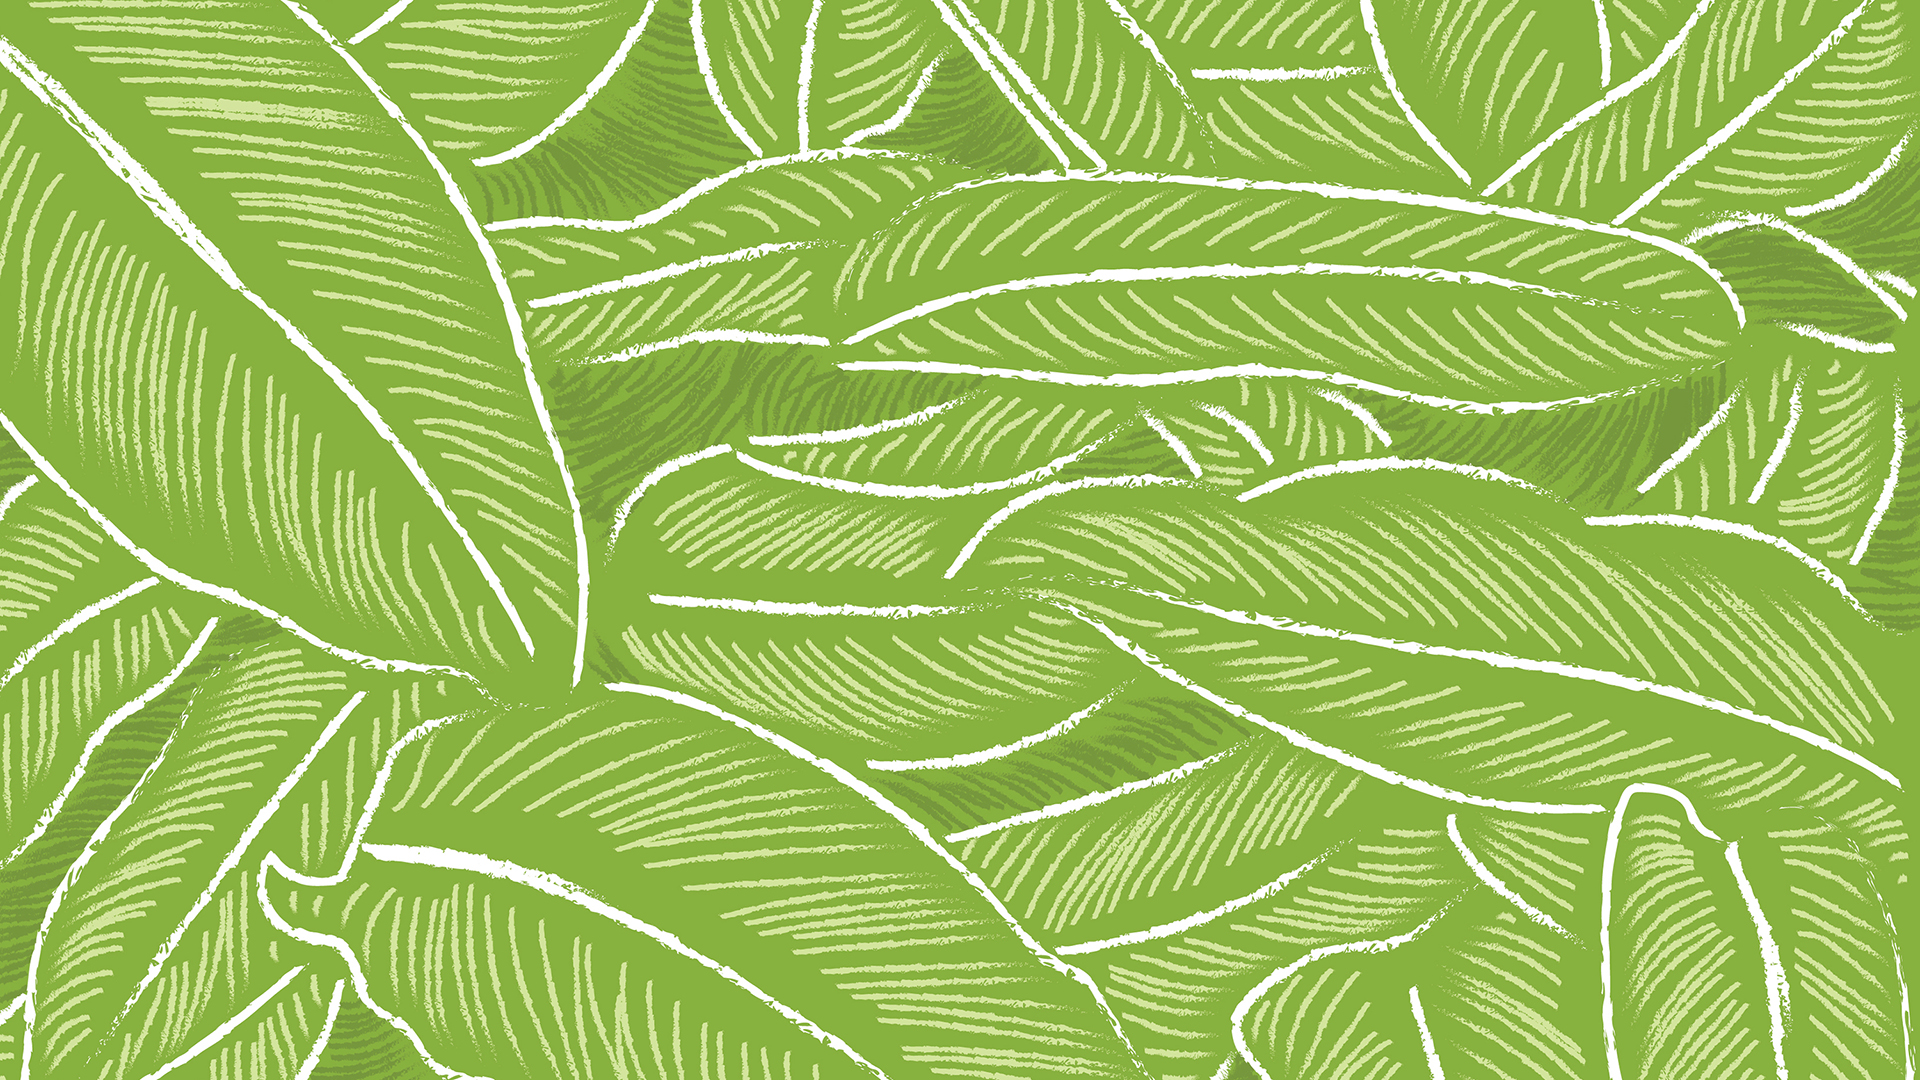 Meaghan's Greenery - Wallpaper